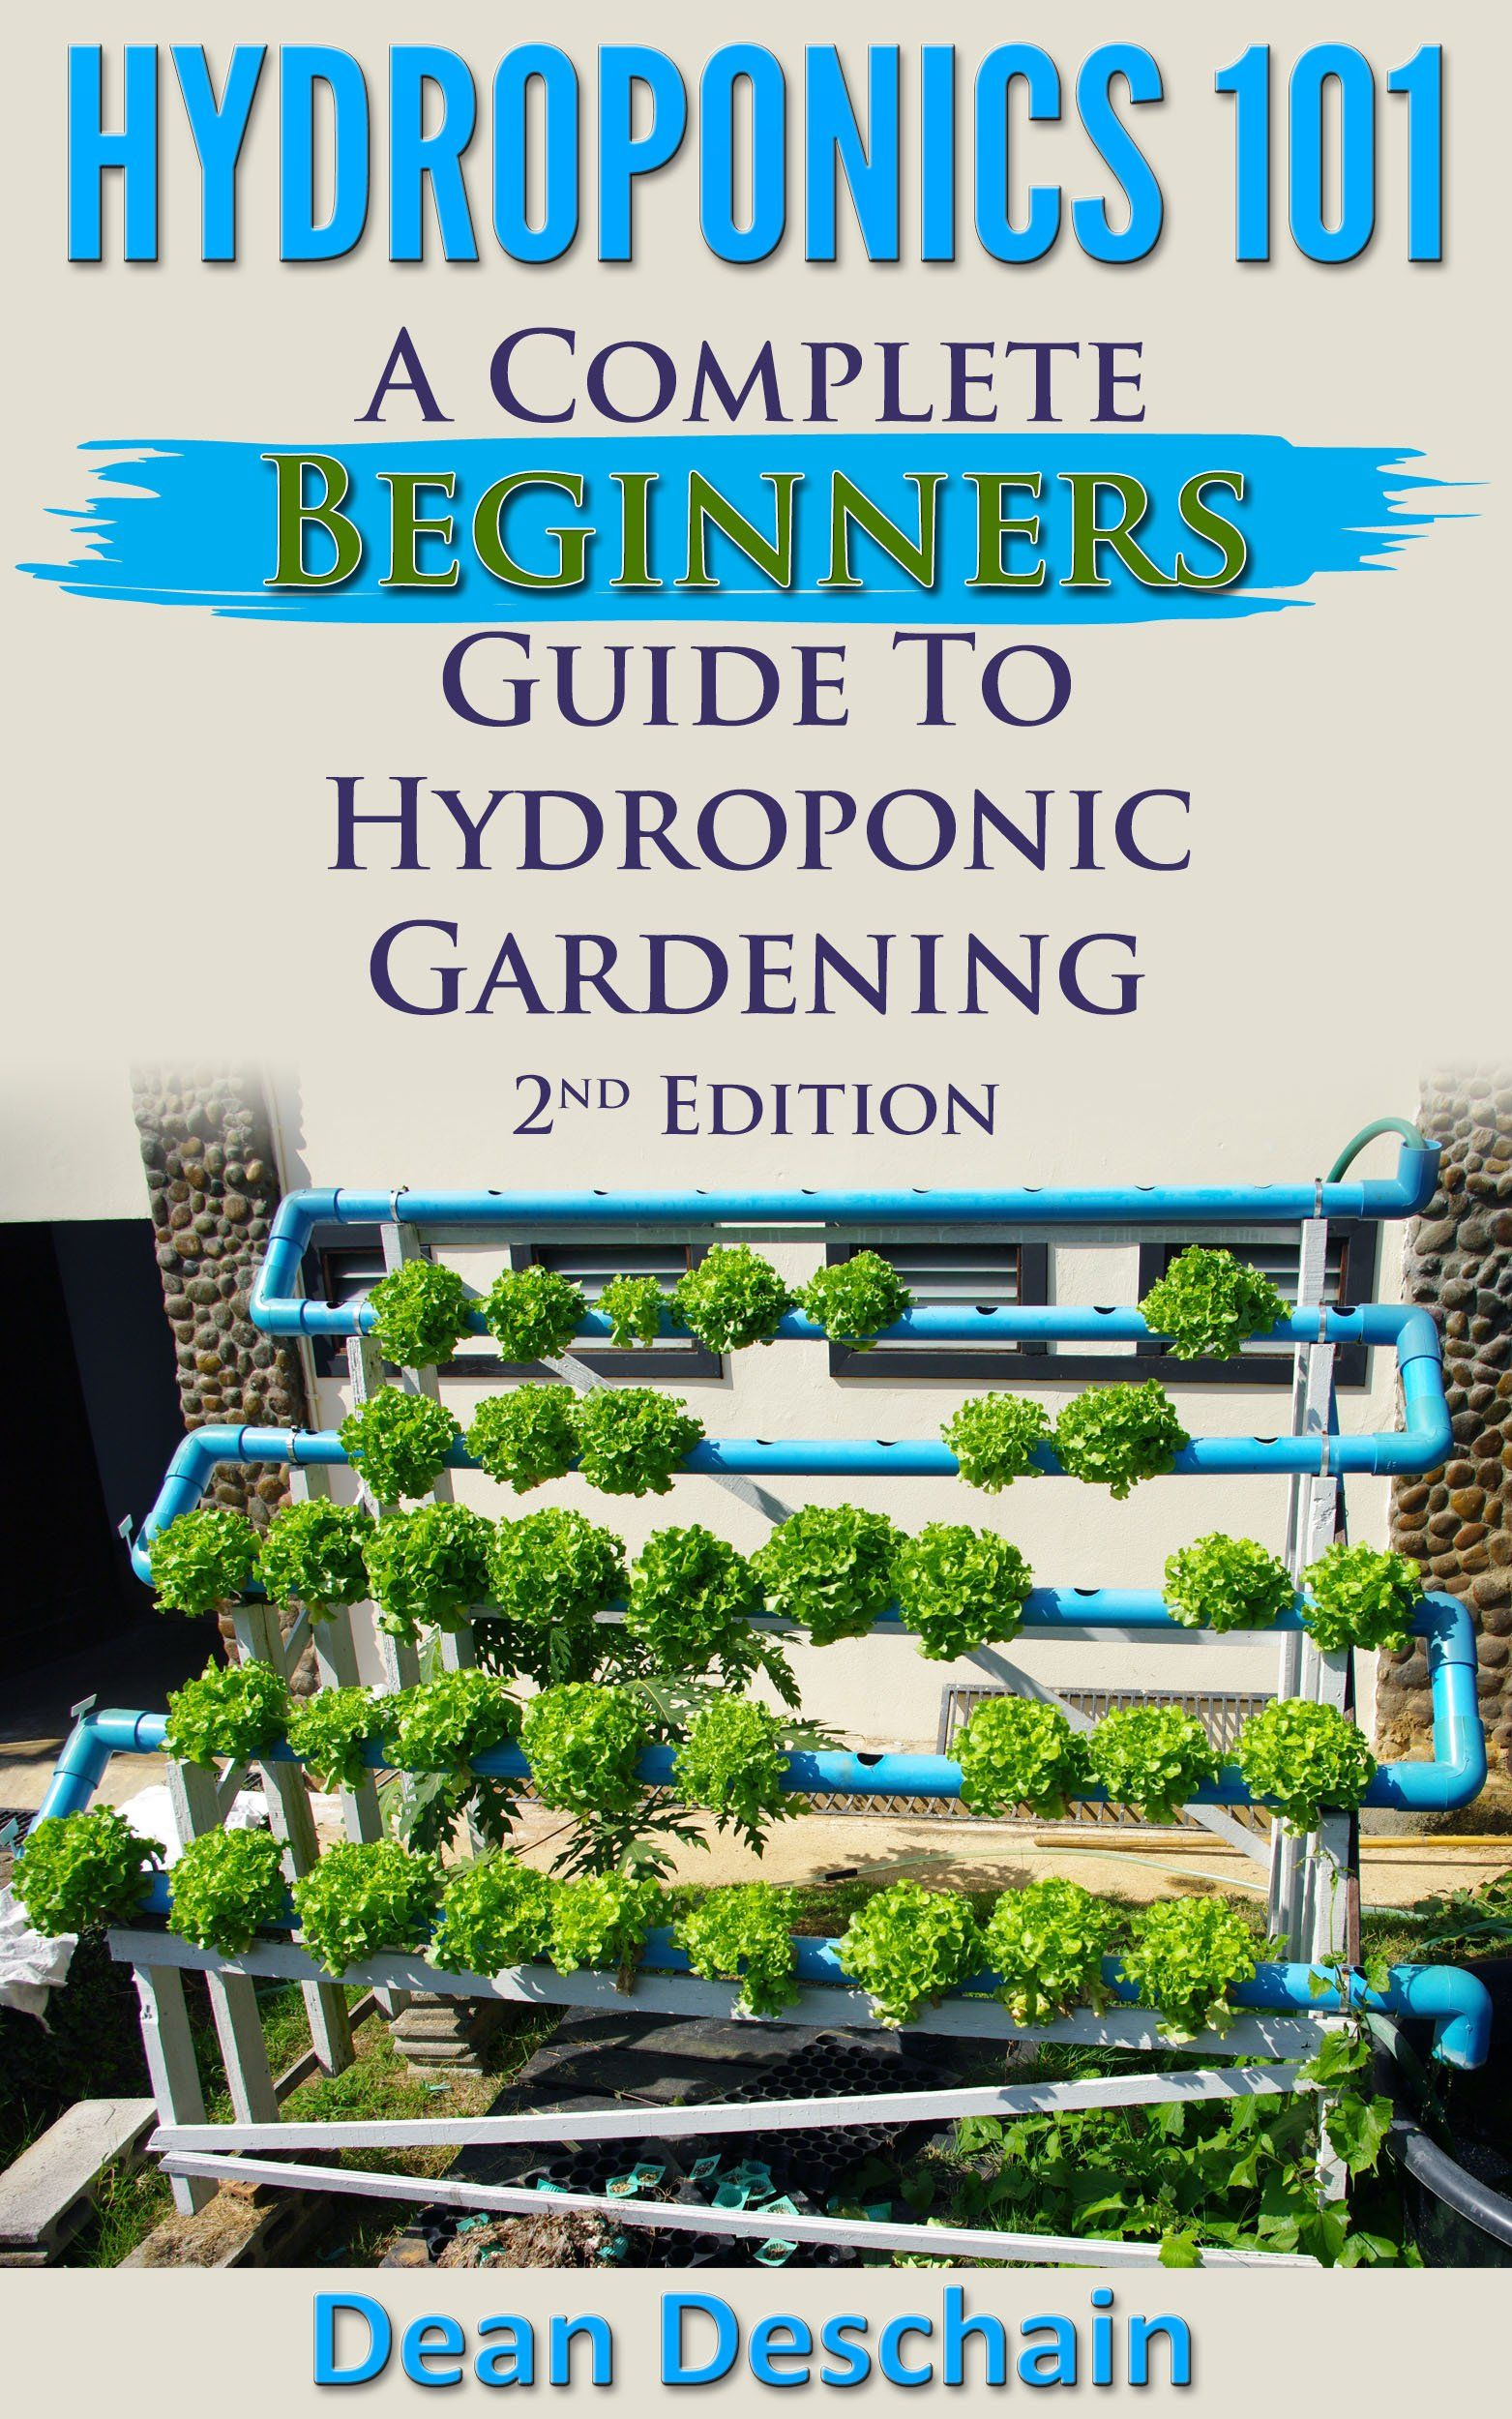 Hydroponics 101 A Complete Beginner S Guide To Hydroponic Gardening 2nd Edition Greenhouse Vegetable Grow Hydroponic Gardening Hydroponics Diy Hydroponics